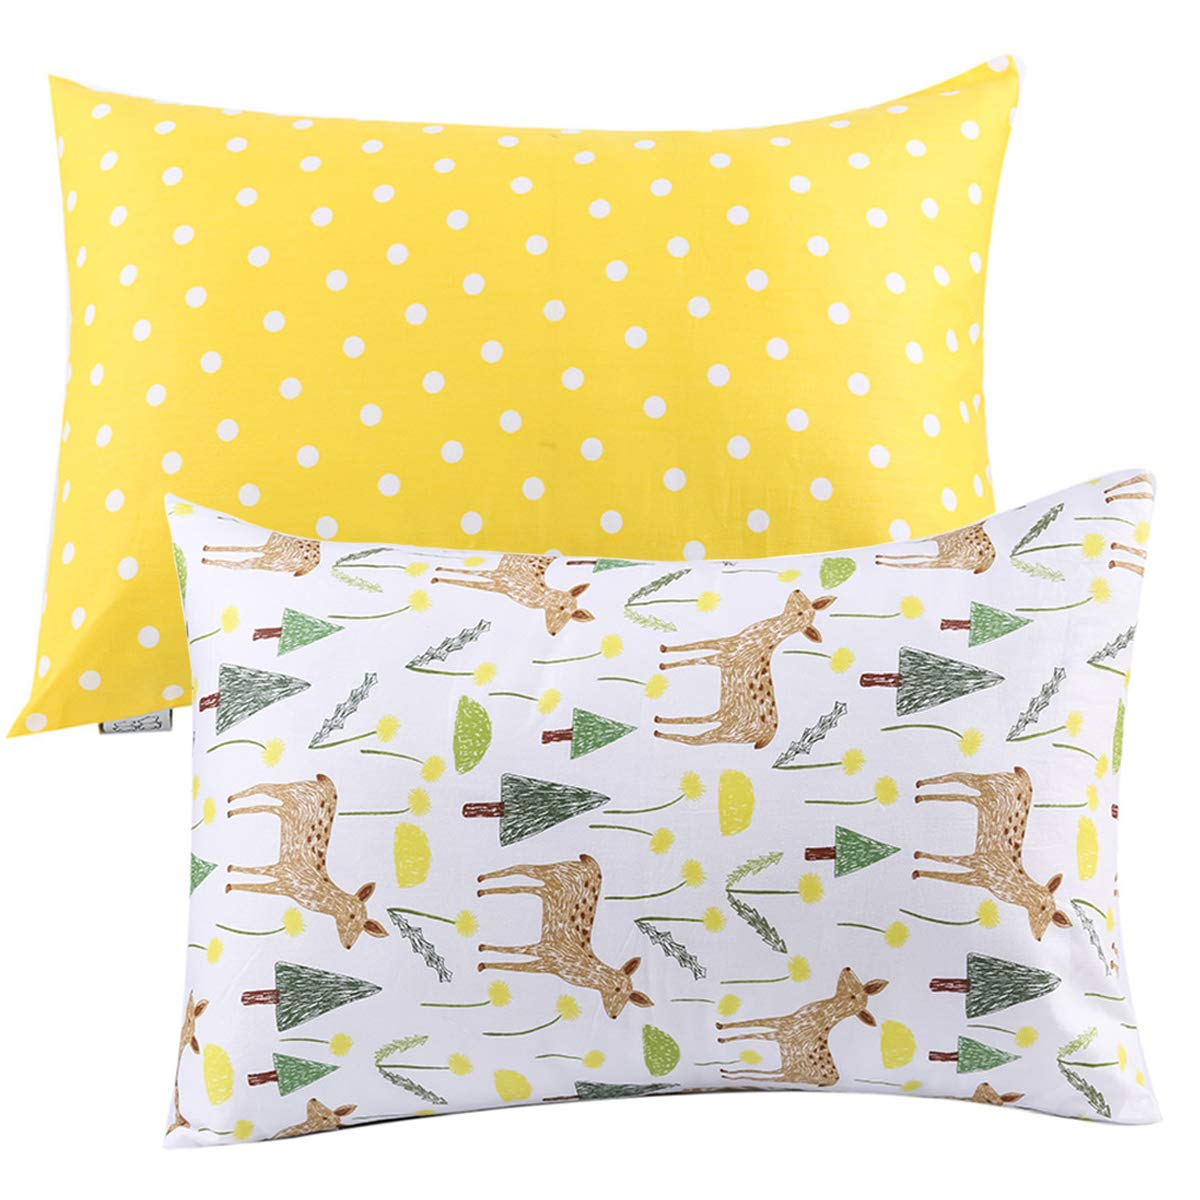 Kids Toddler Pillowcases UOMNY 2 Pack 100% Cotton Pillow Cover Cases13 x 18 for Kids Bedding yellow dot/ deer